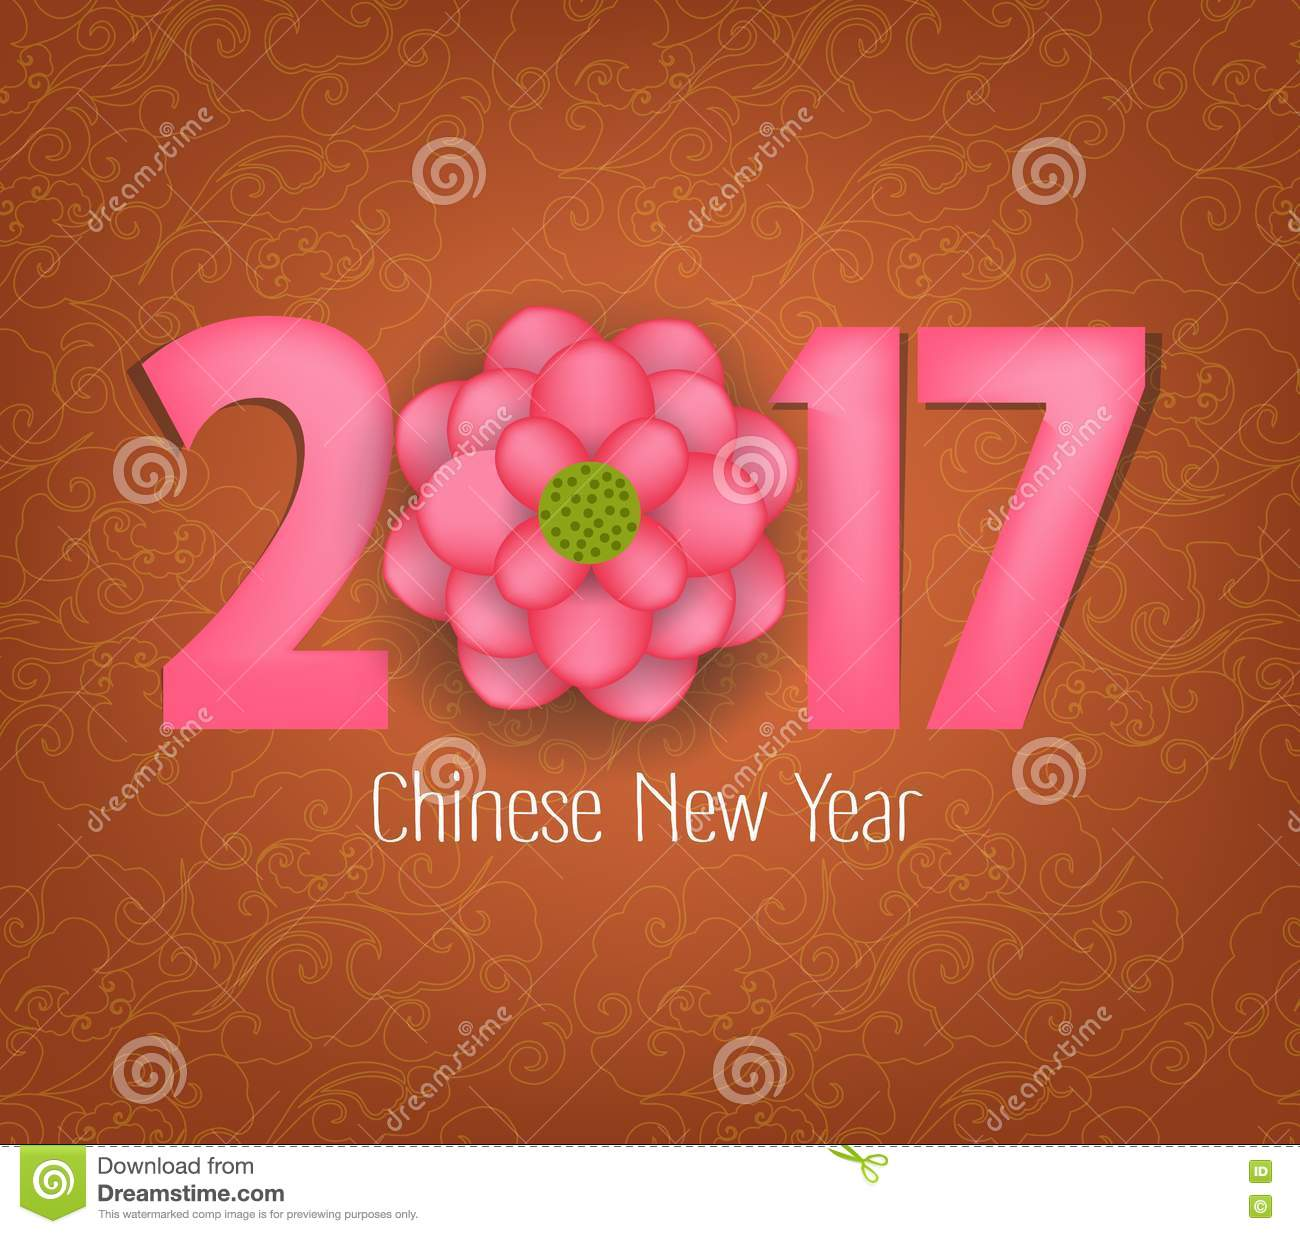 Chinese new year 2017 blooming flower design stock vector - Flowers for chinese new year ...